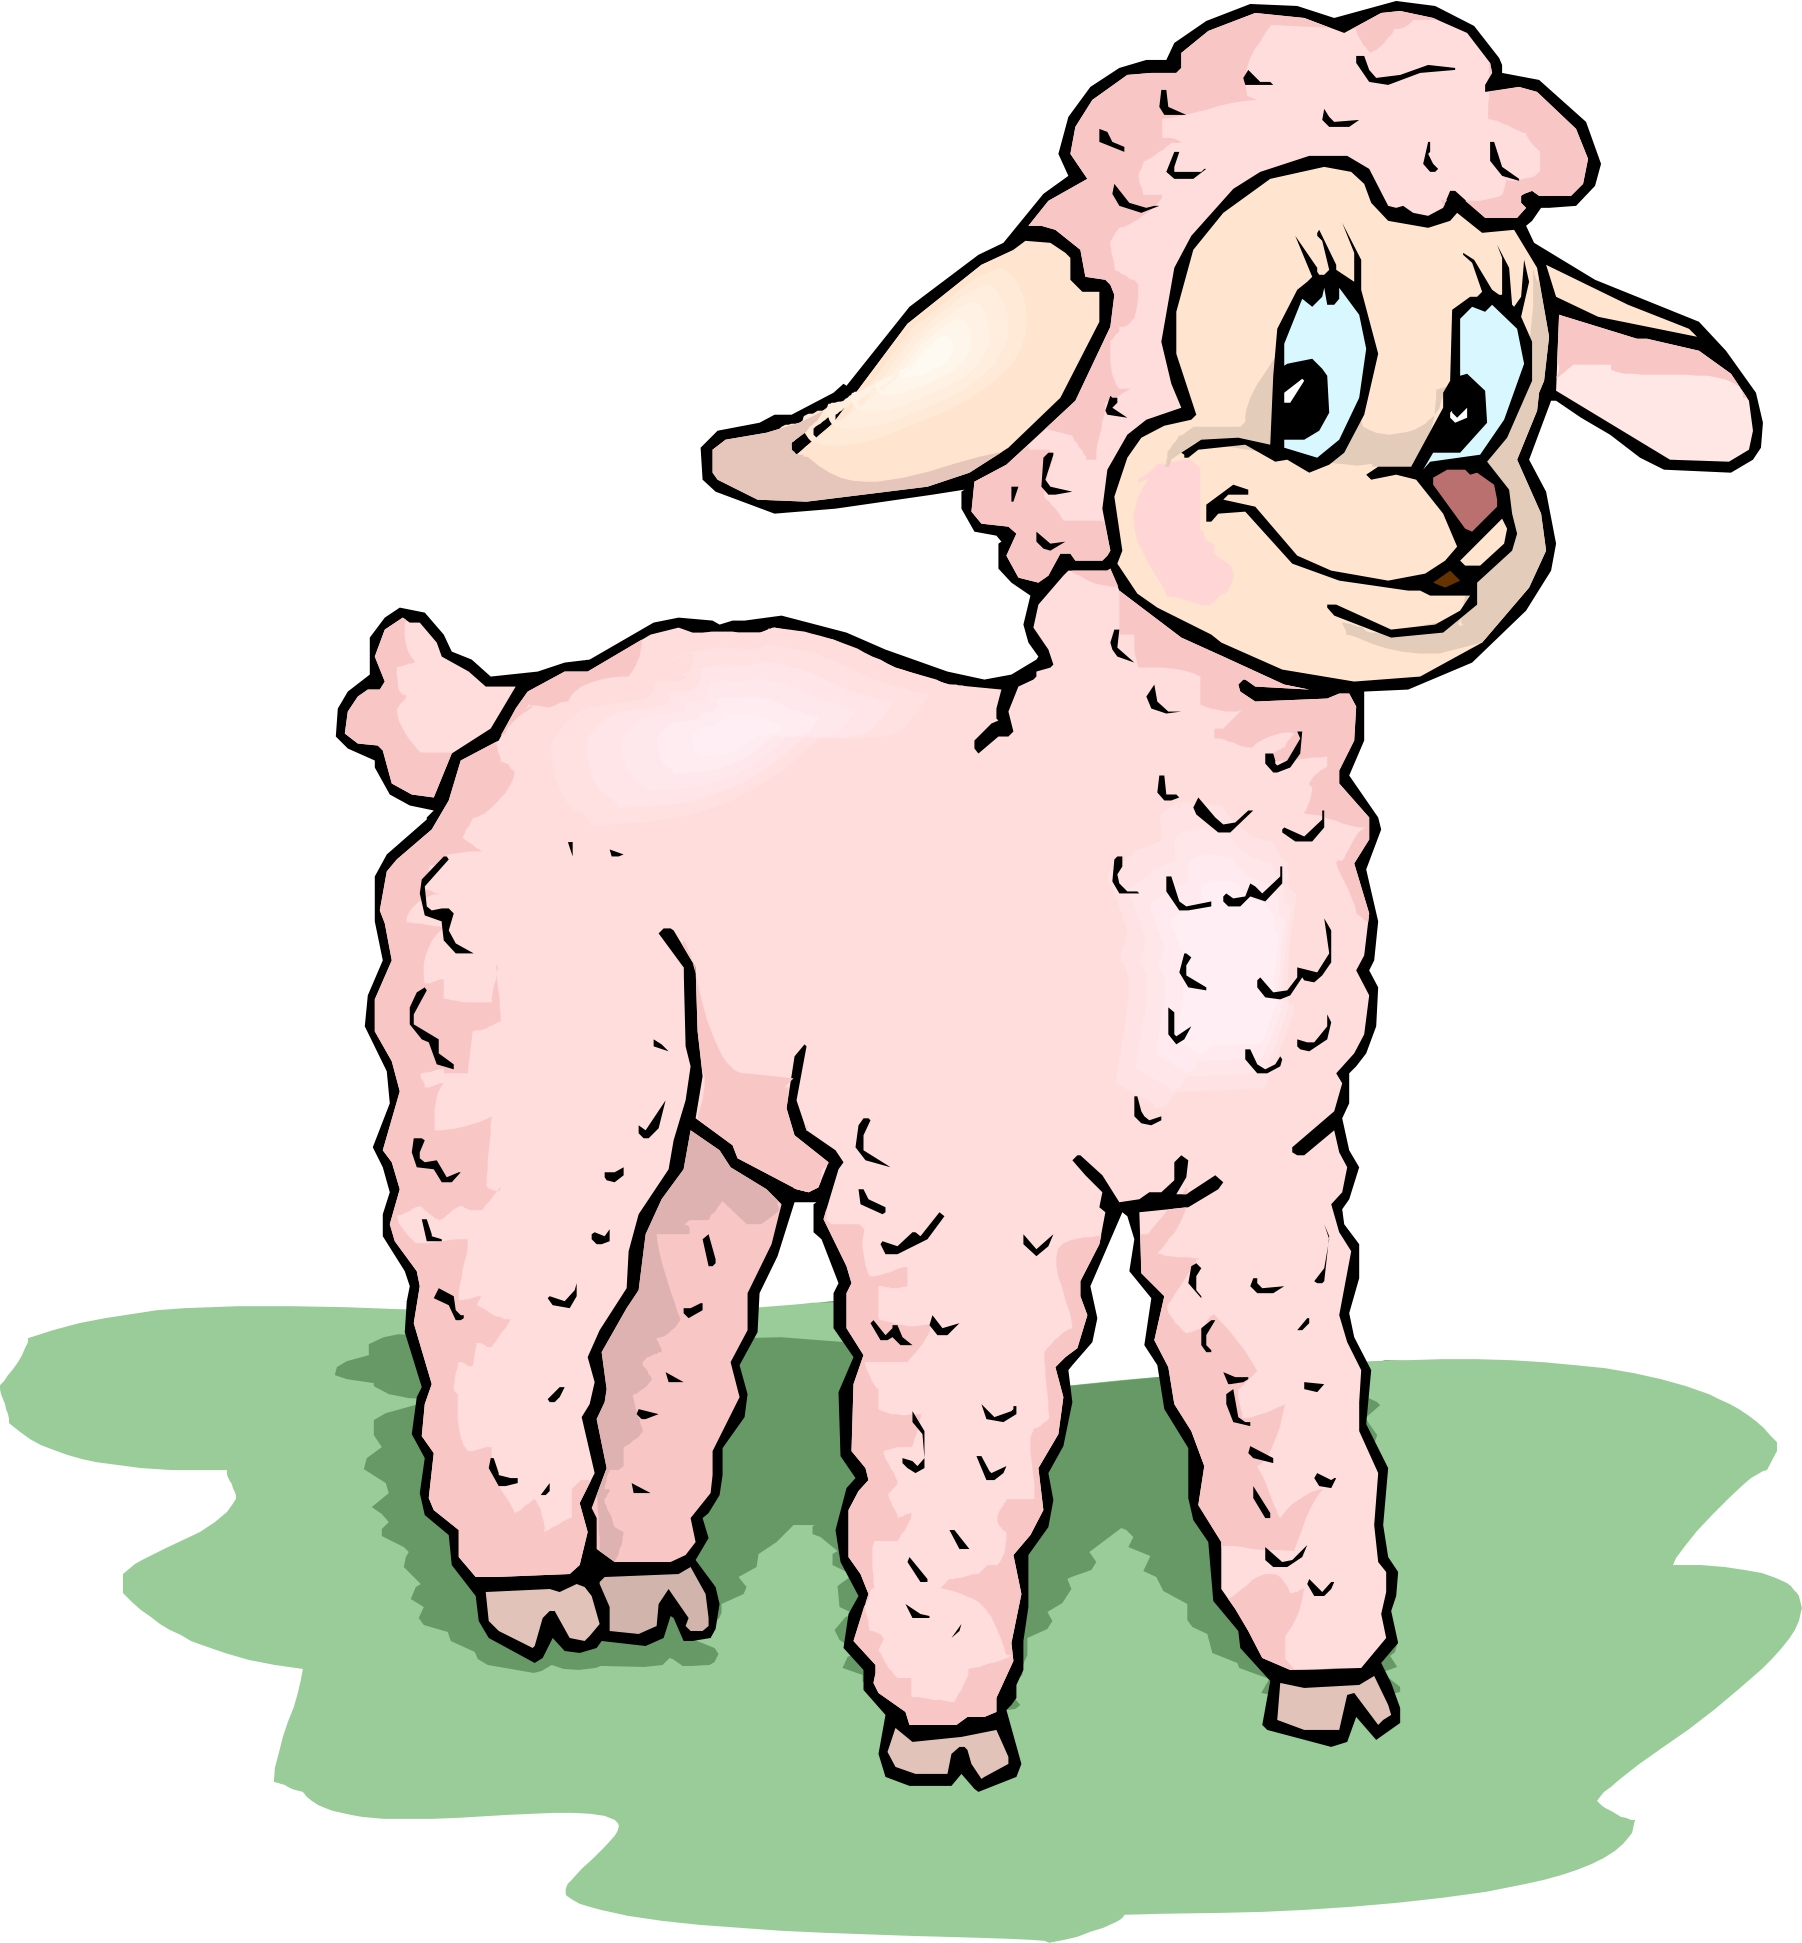 Cartoon Sheep | Page 2 - ClipArt Best - ClipArt Best